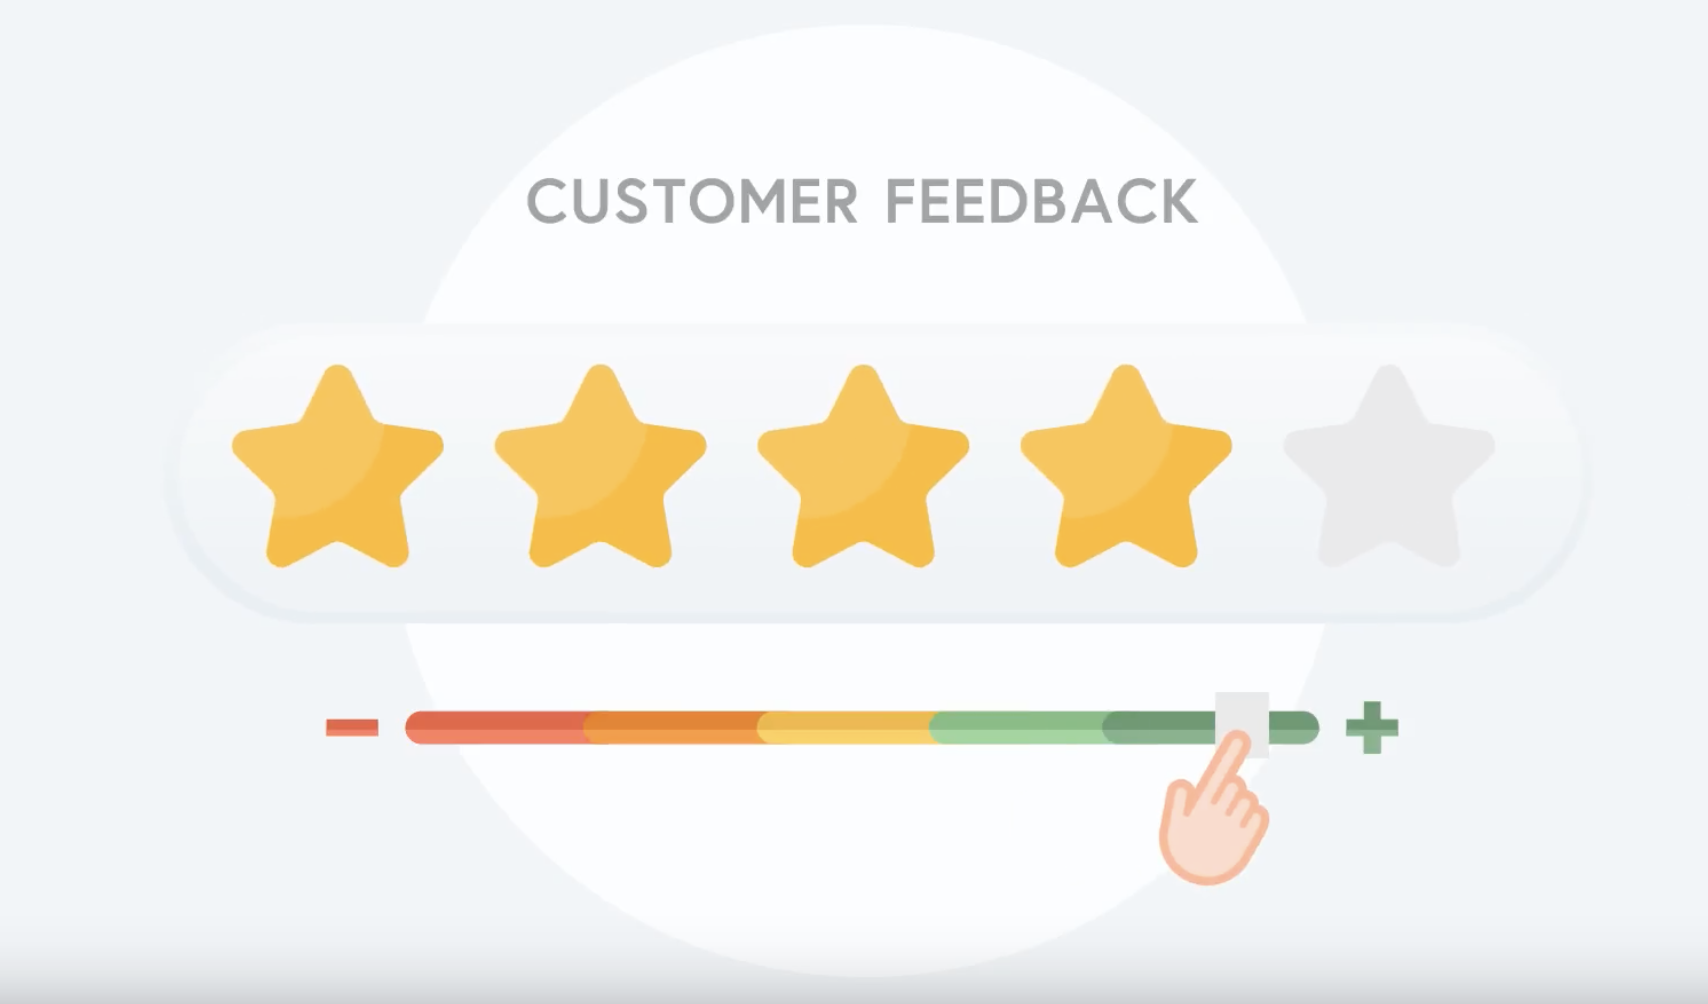 Gather customer feedback